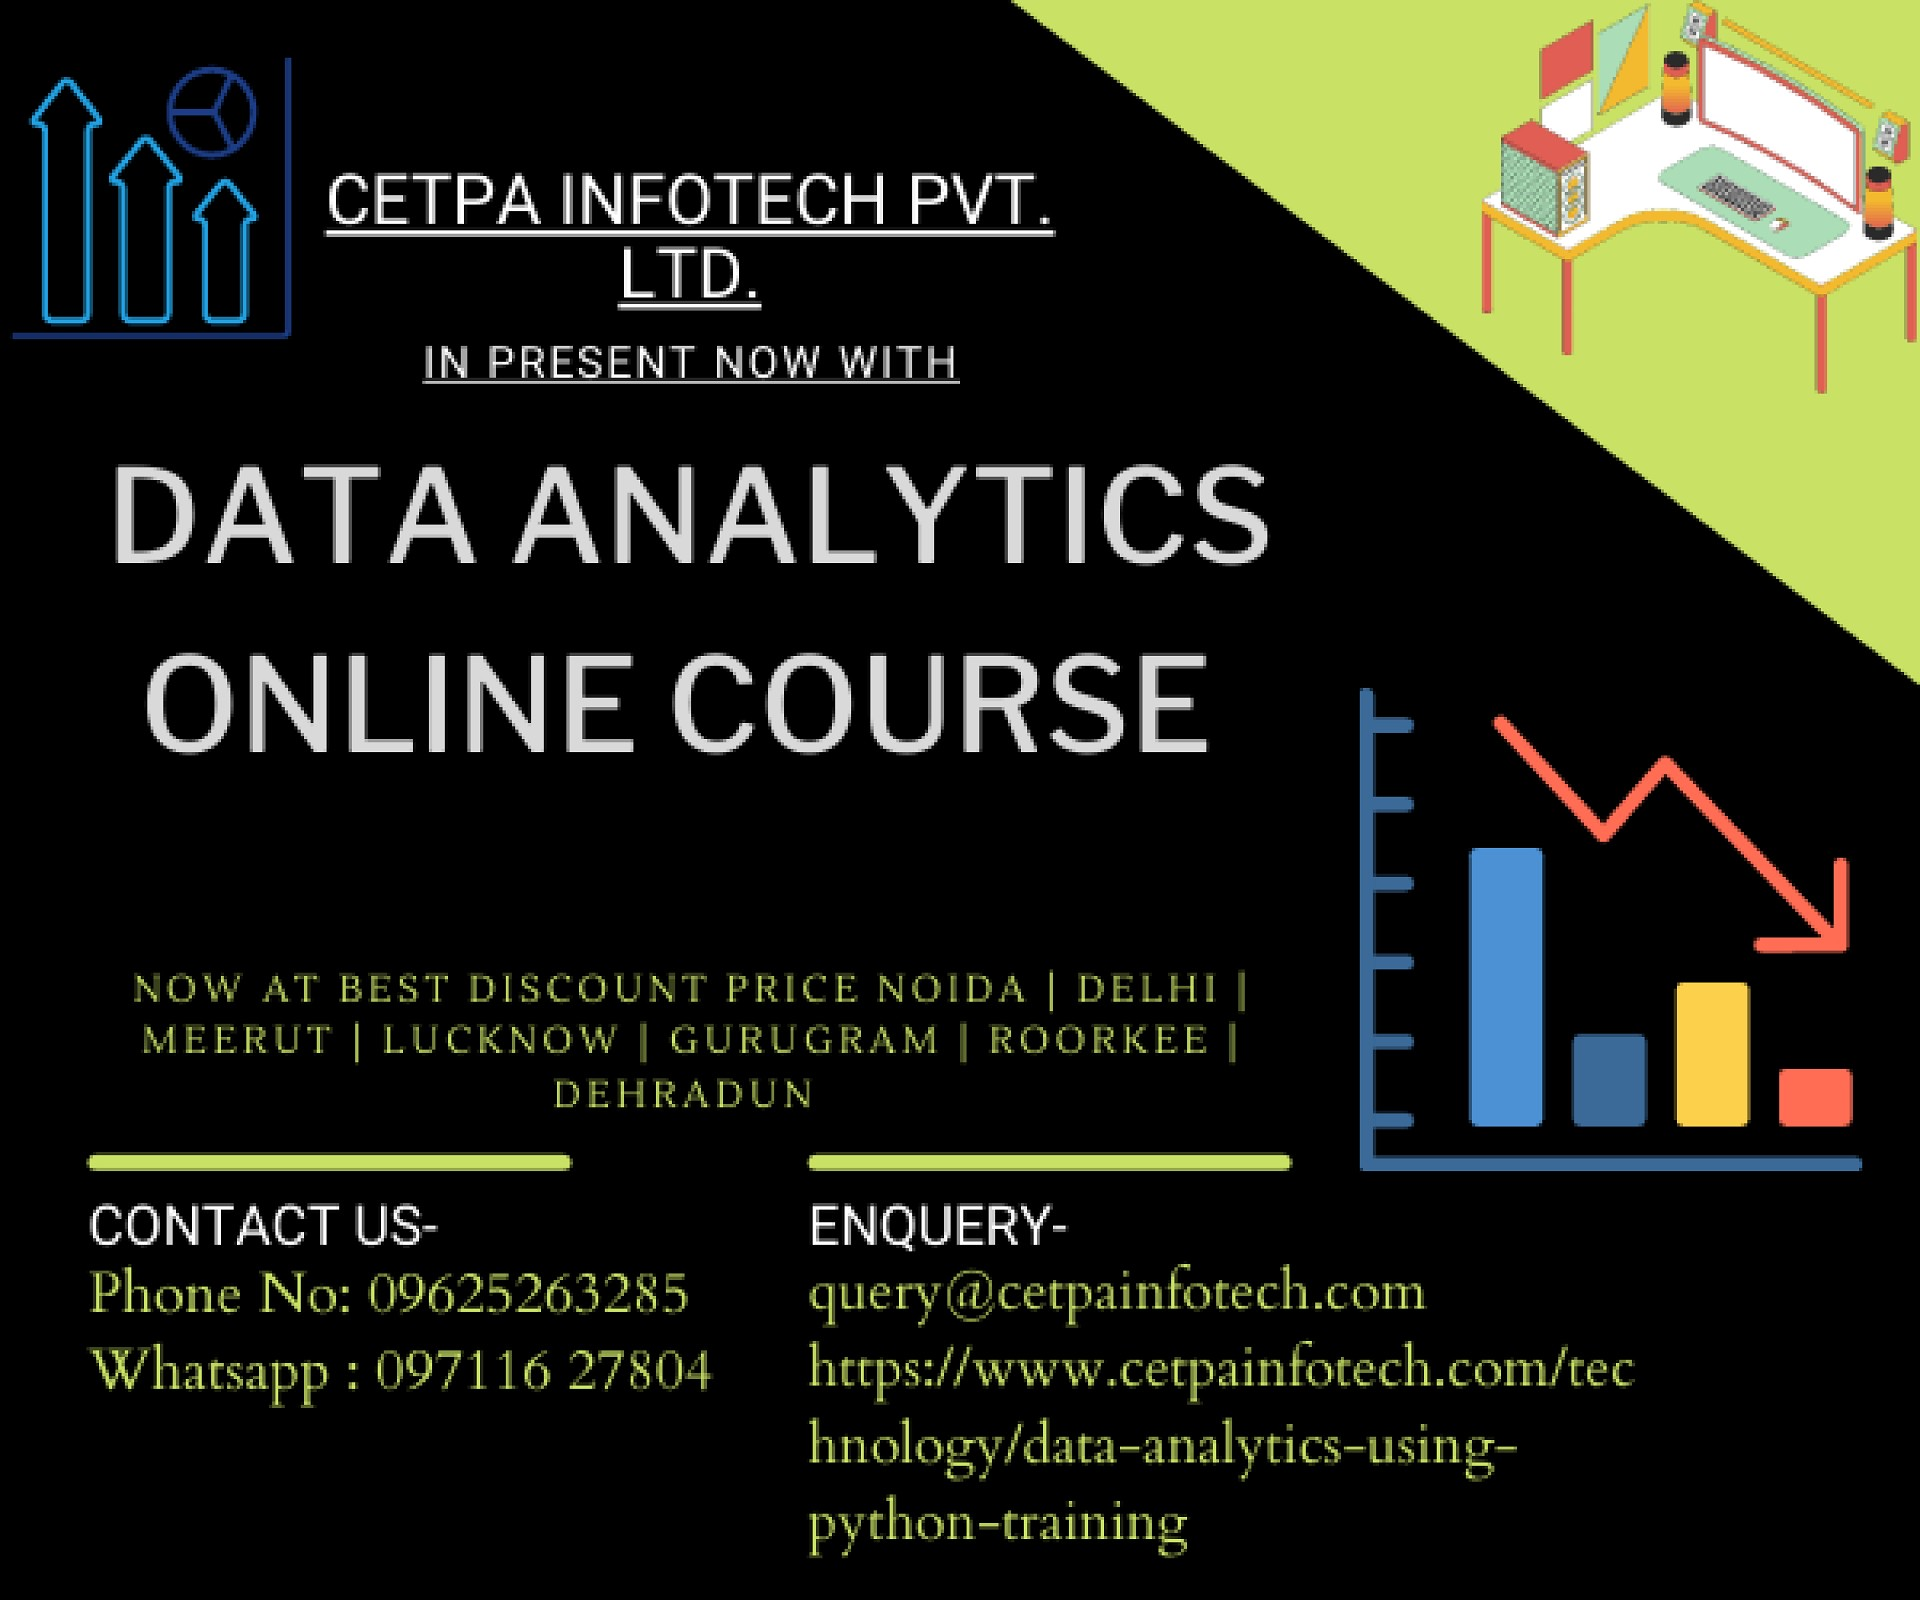 Data Analytics Online Course With Best Discount Price Now